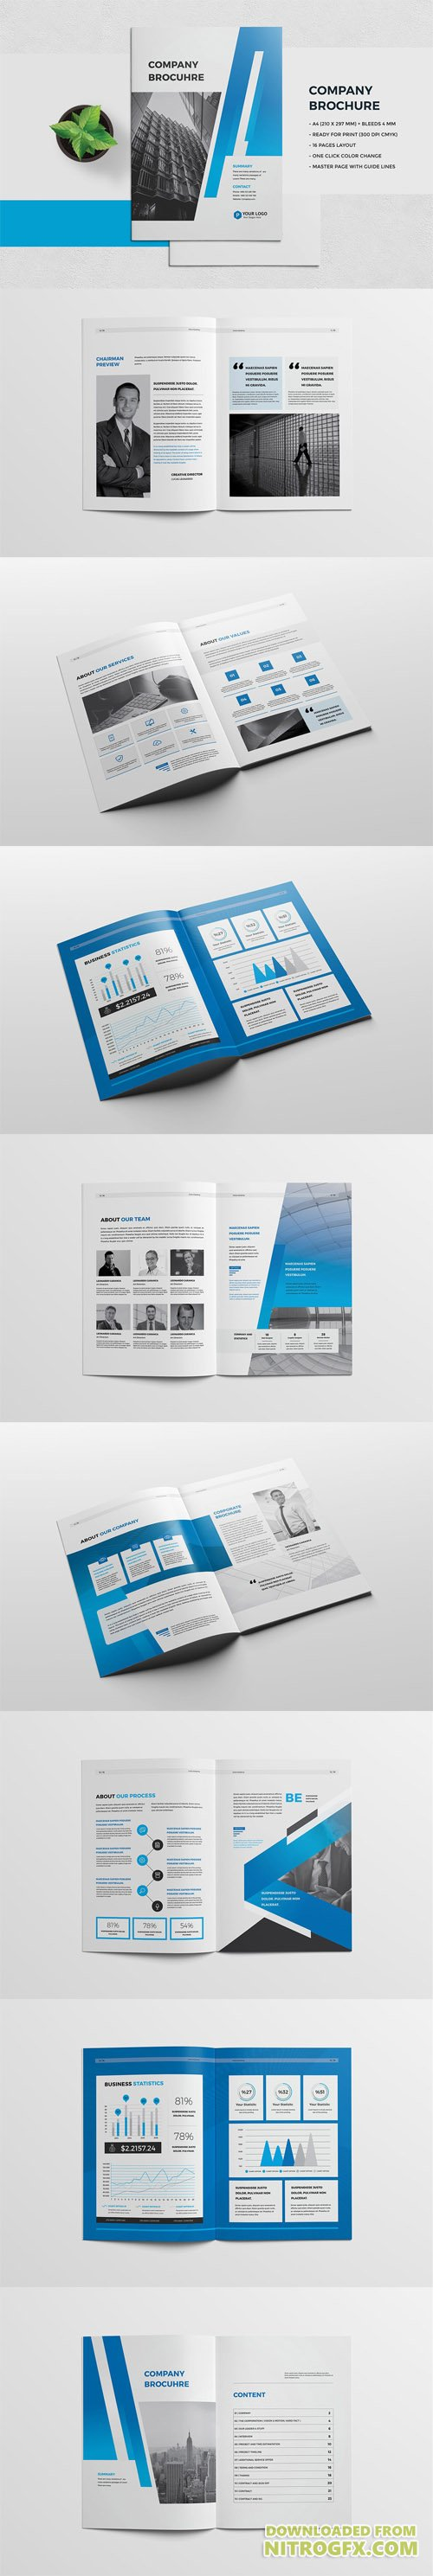 INDD - Company Brochure